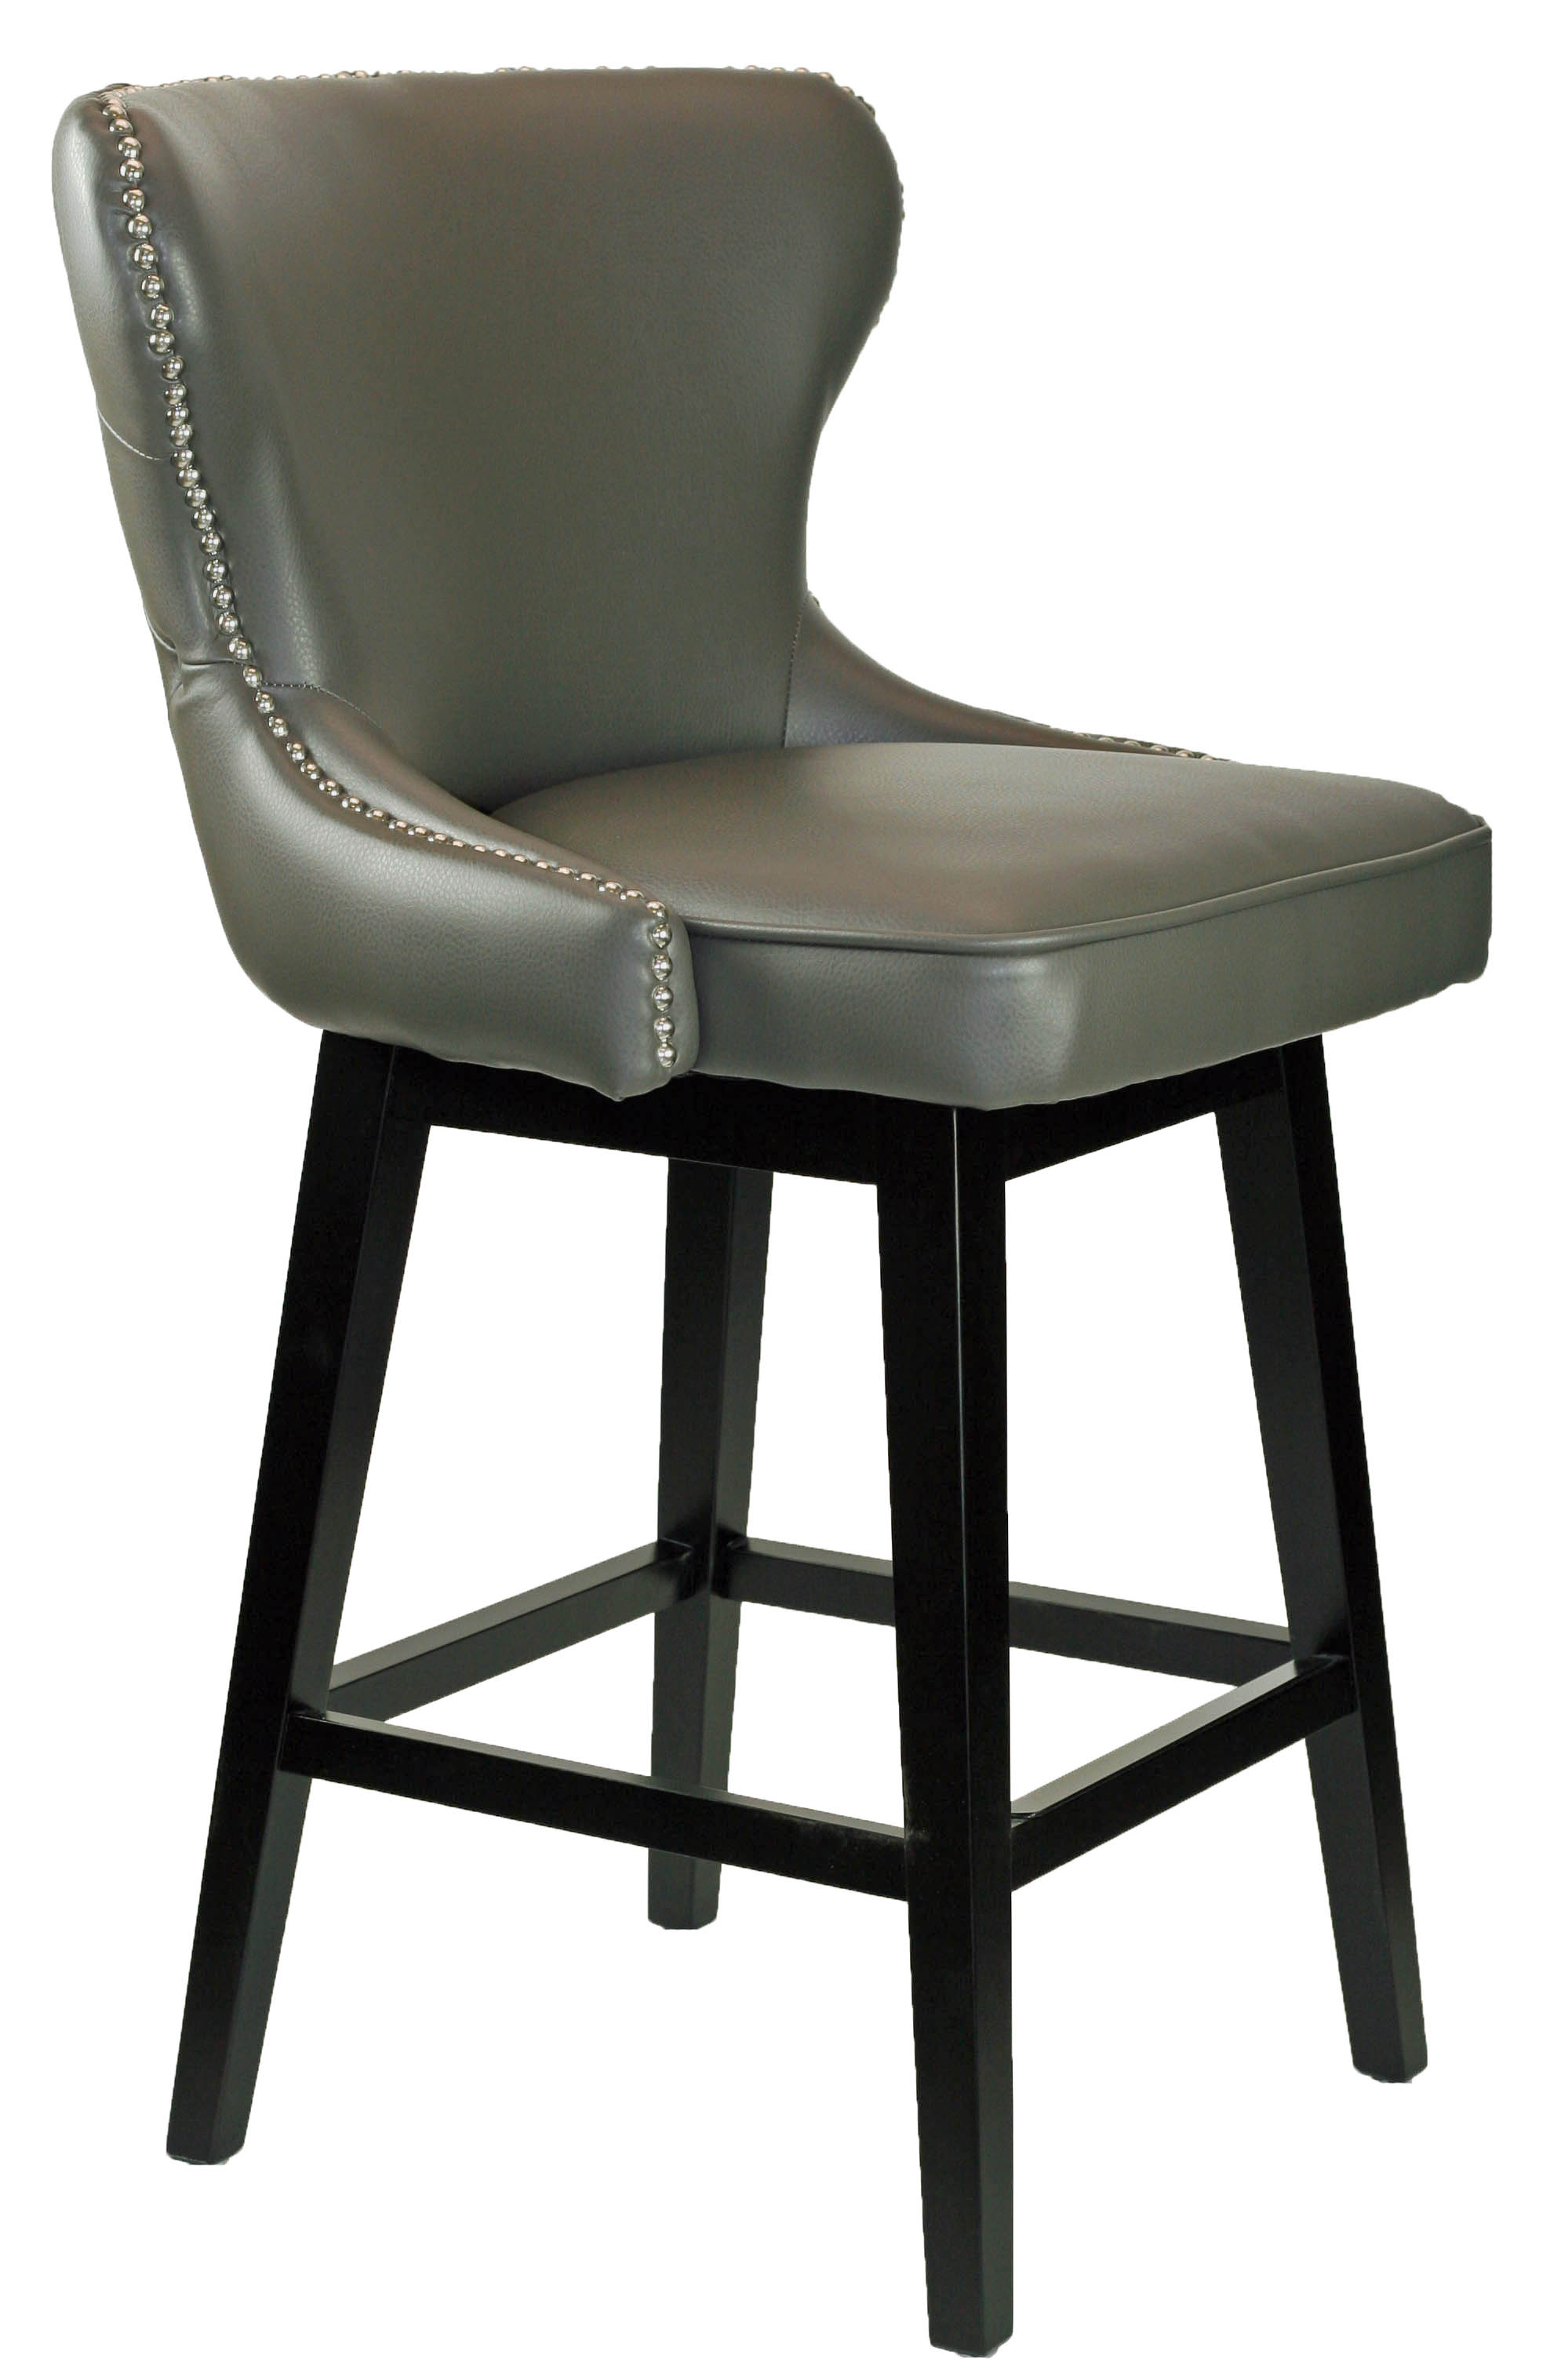 R 8707 Grey Leather Swivel Counter Stool With Chrome Nailheads